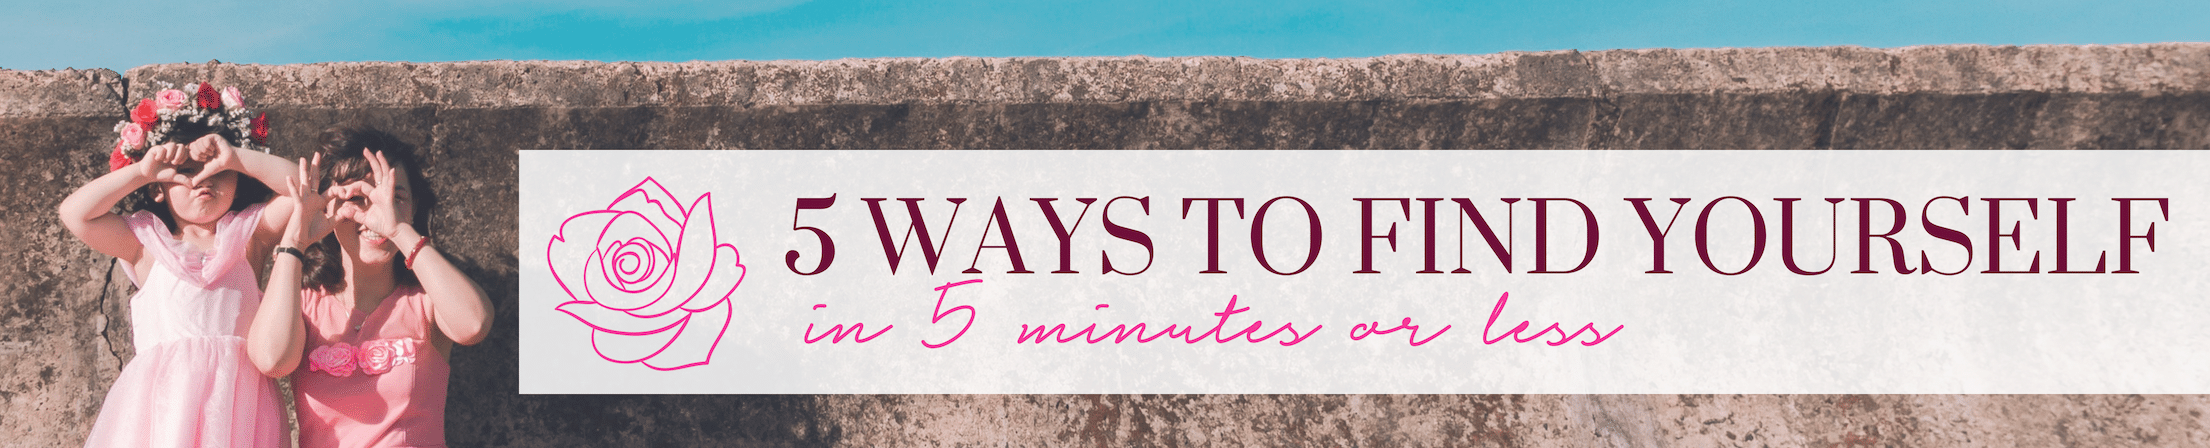 5 ways to find yourself in 5 minutes or less 1 Dealing With a Picky Eater: Does Your Child Refuse to Eat Anything?